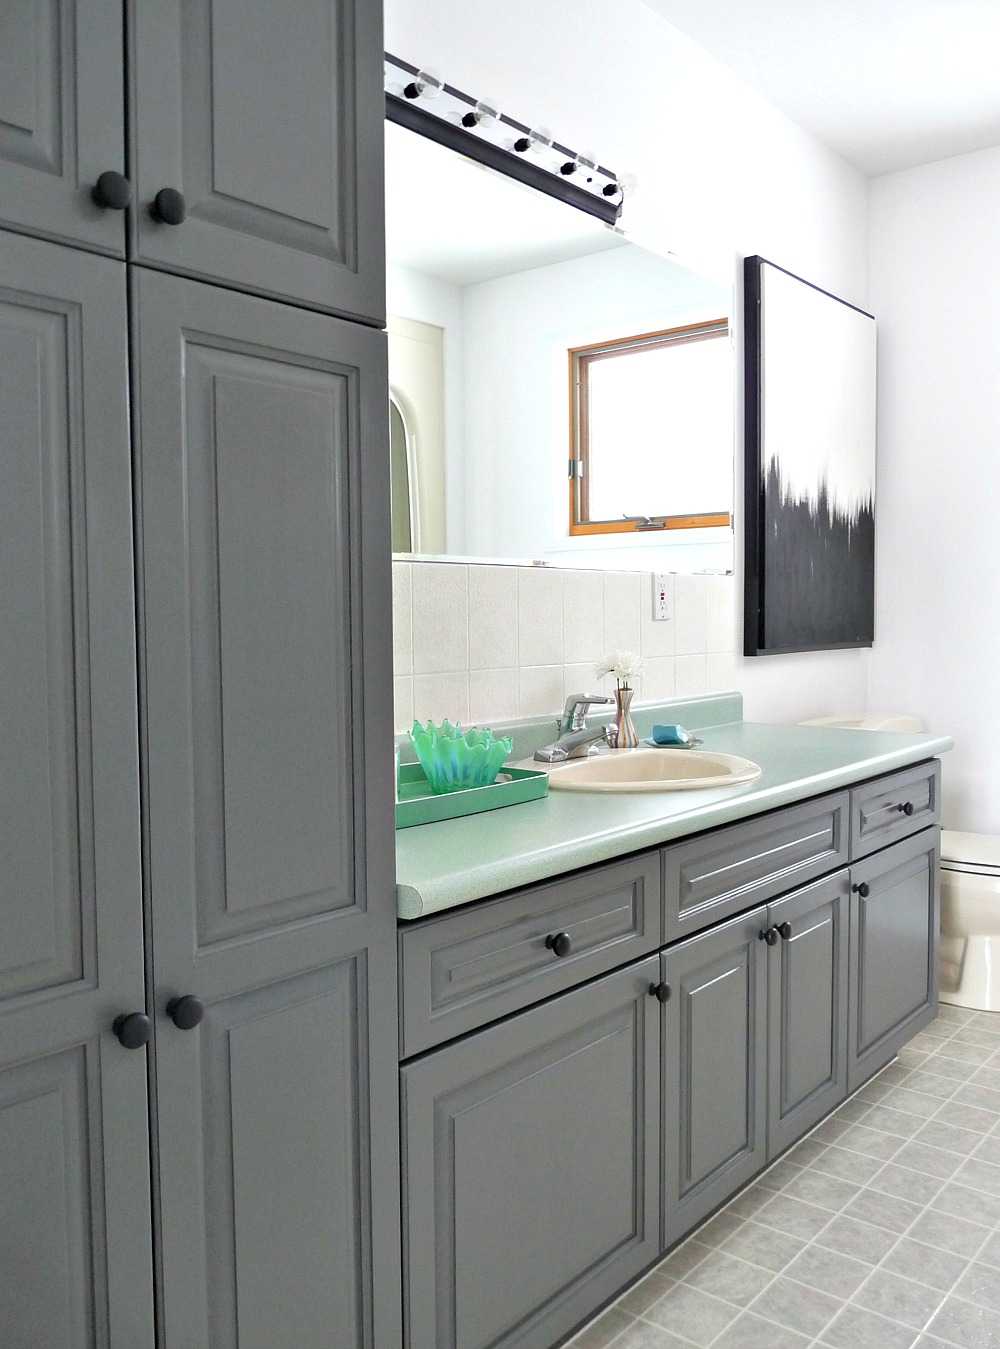 A Mid Century Modern Inspired Bathroom Renovation Before After Dans Le Lakehouse